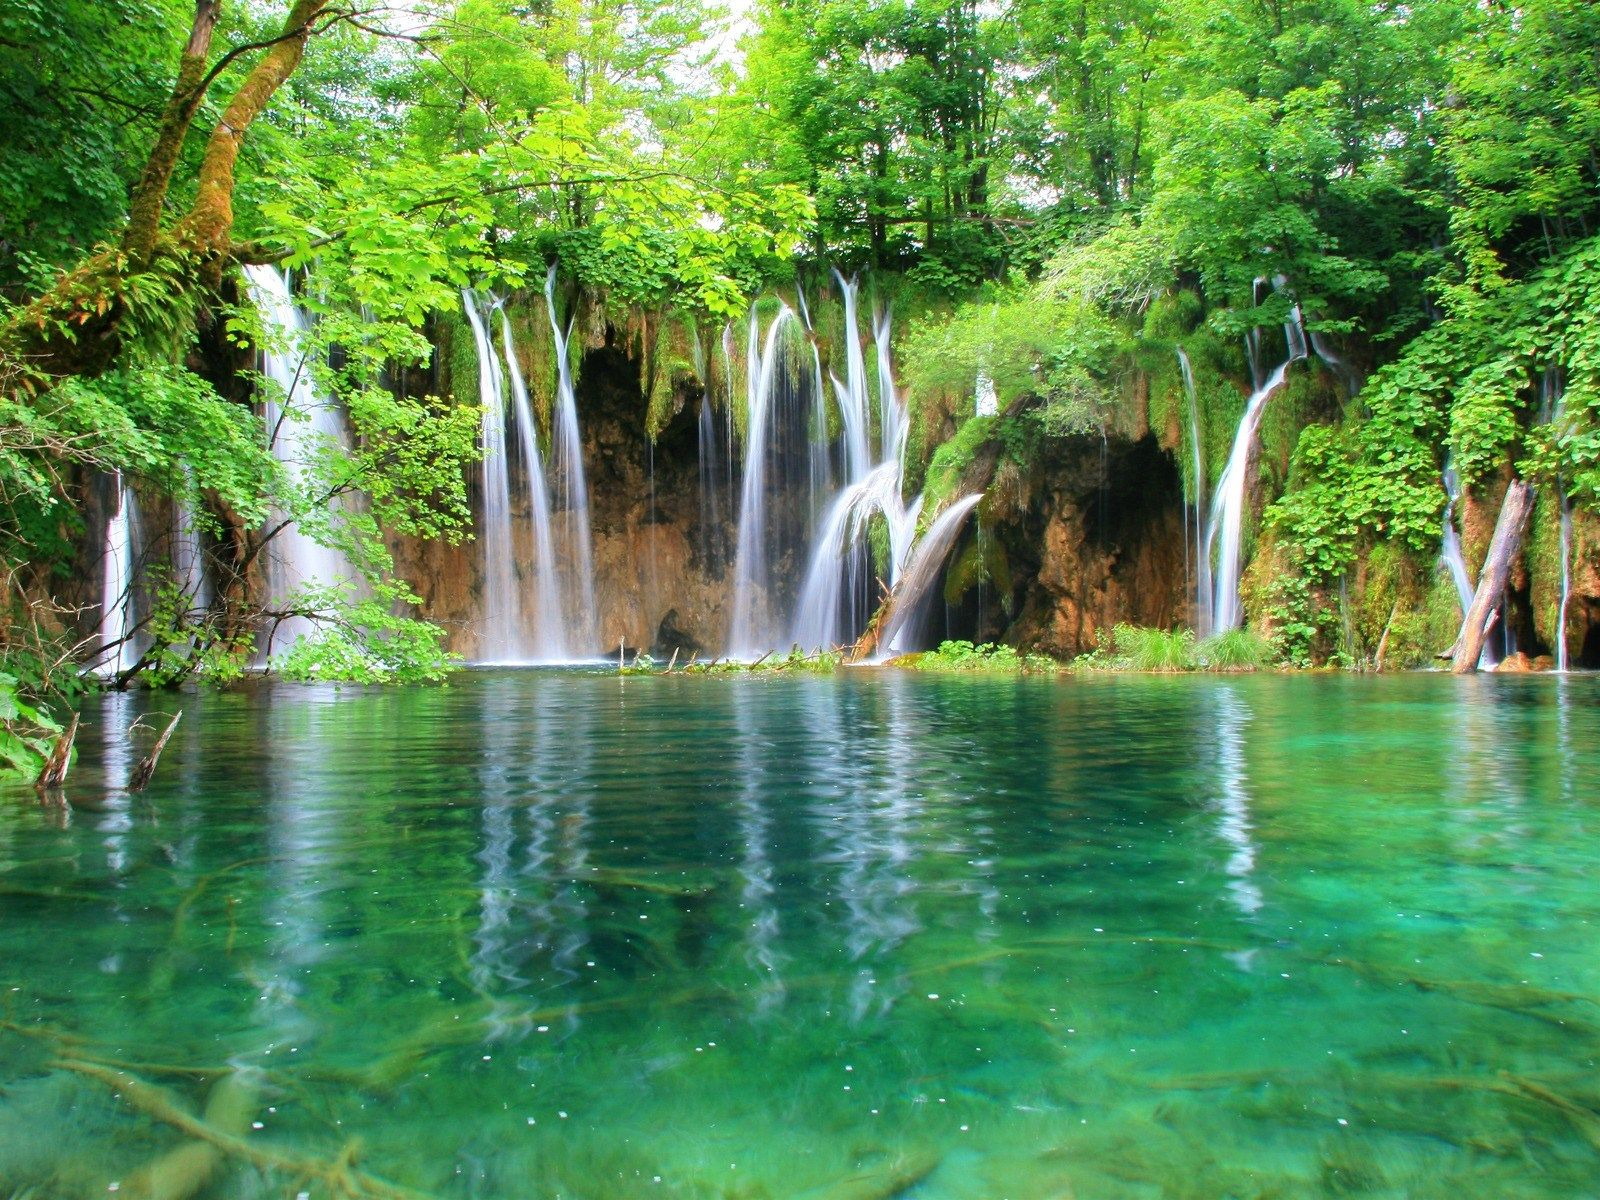 Filename 1600x1200 Waterfall Full Hd Wallpaper Photo Jpg 662 Kb Resolution 1600x Beautiful Vacation Spots Plitvice Lakes National Park Waterfall Wallpaper